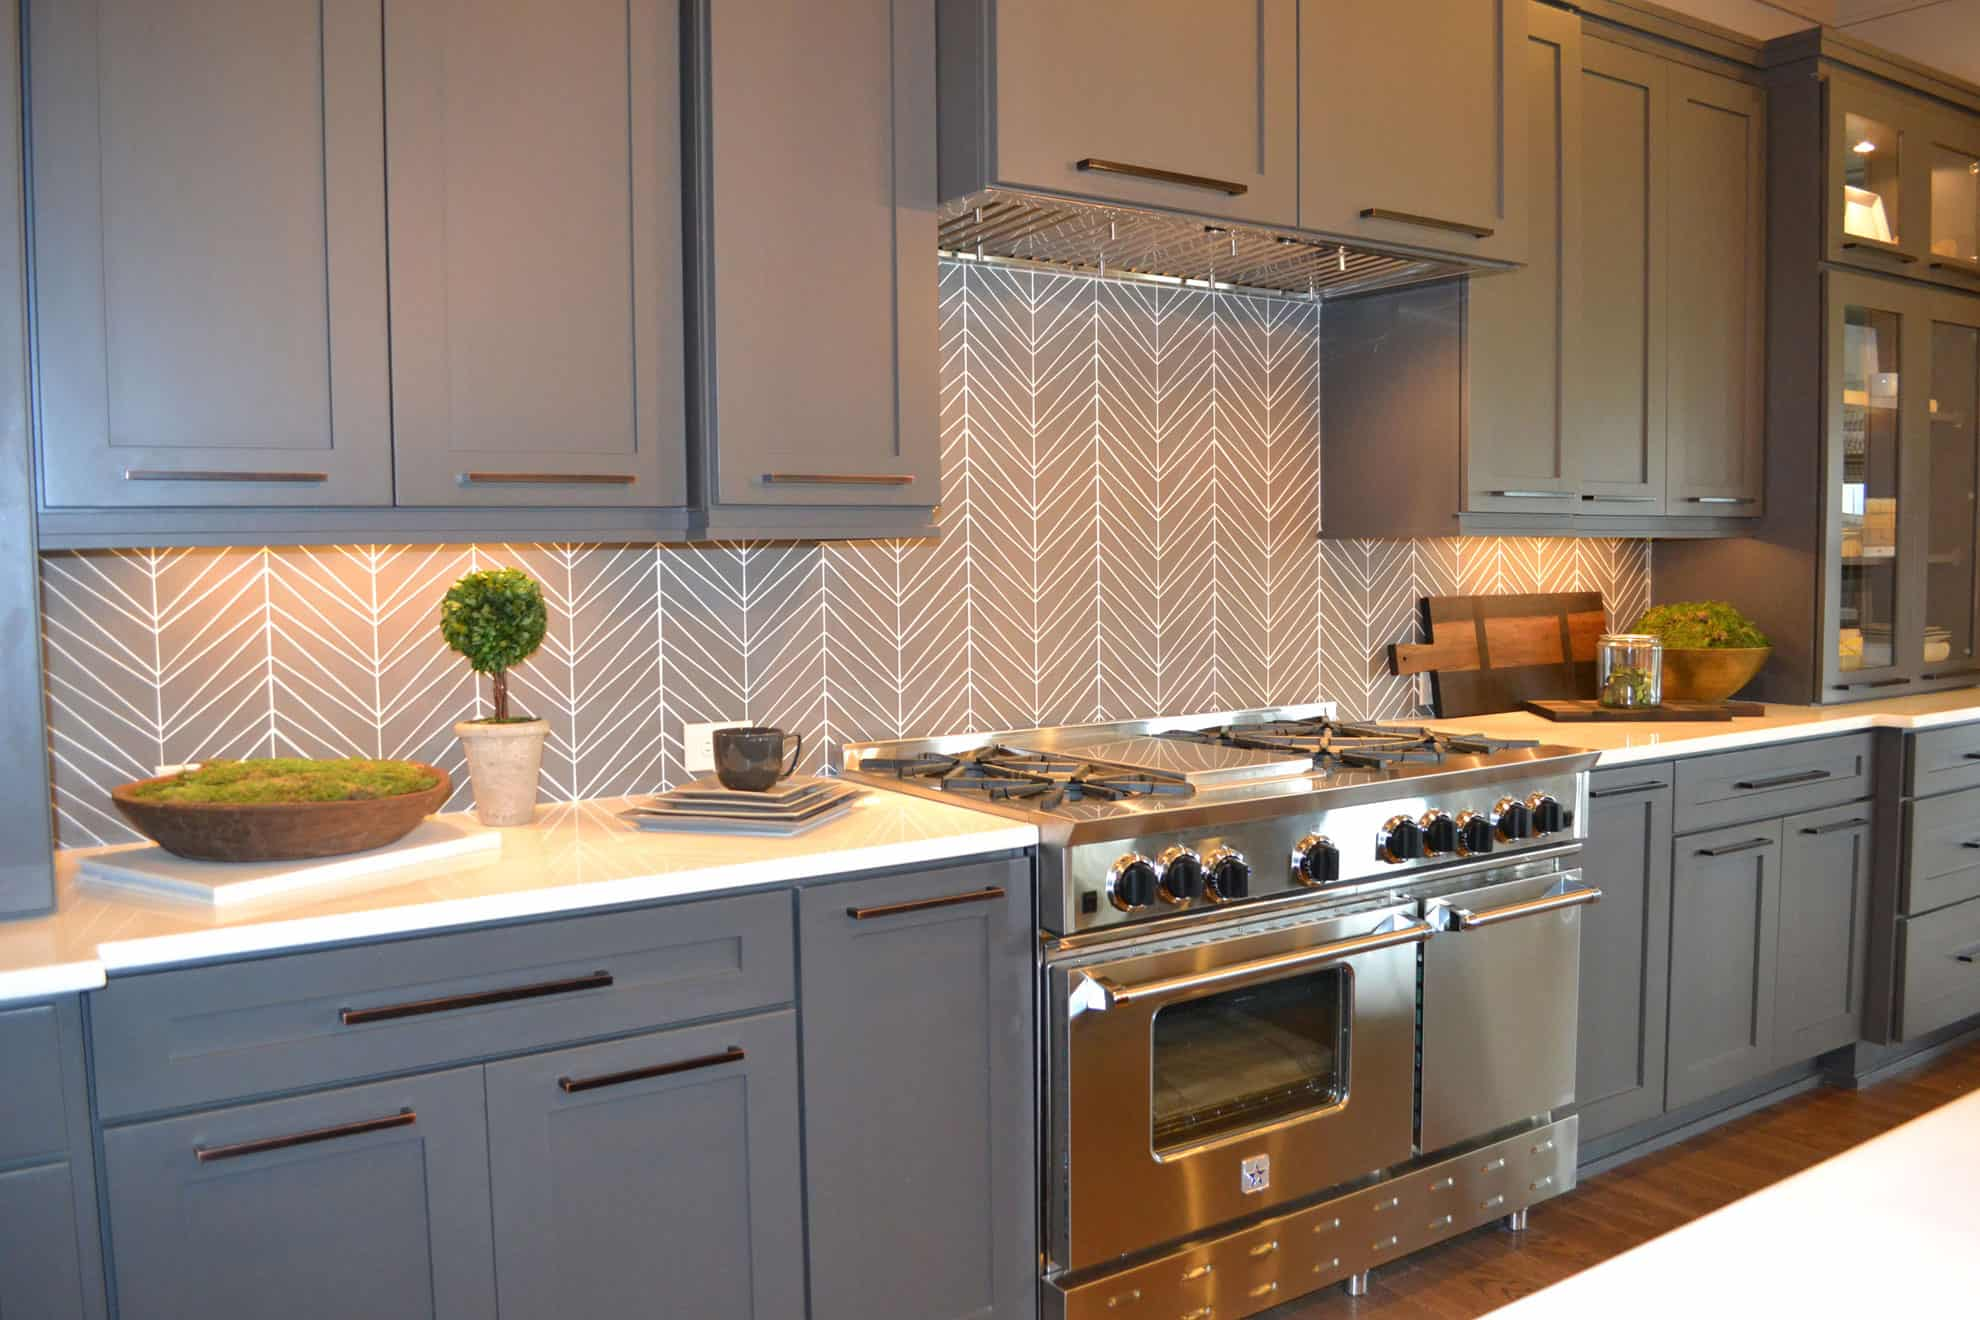 Chevron is one of those patterns that simply works anywhere it is placed.